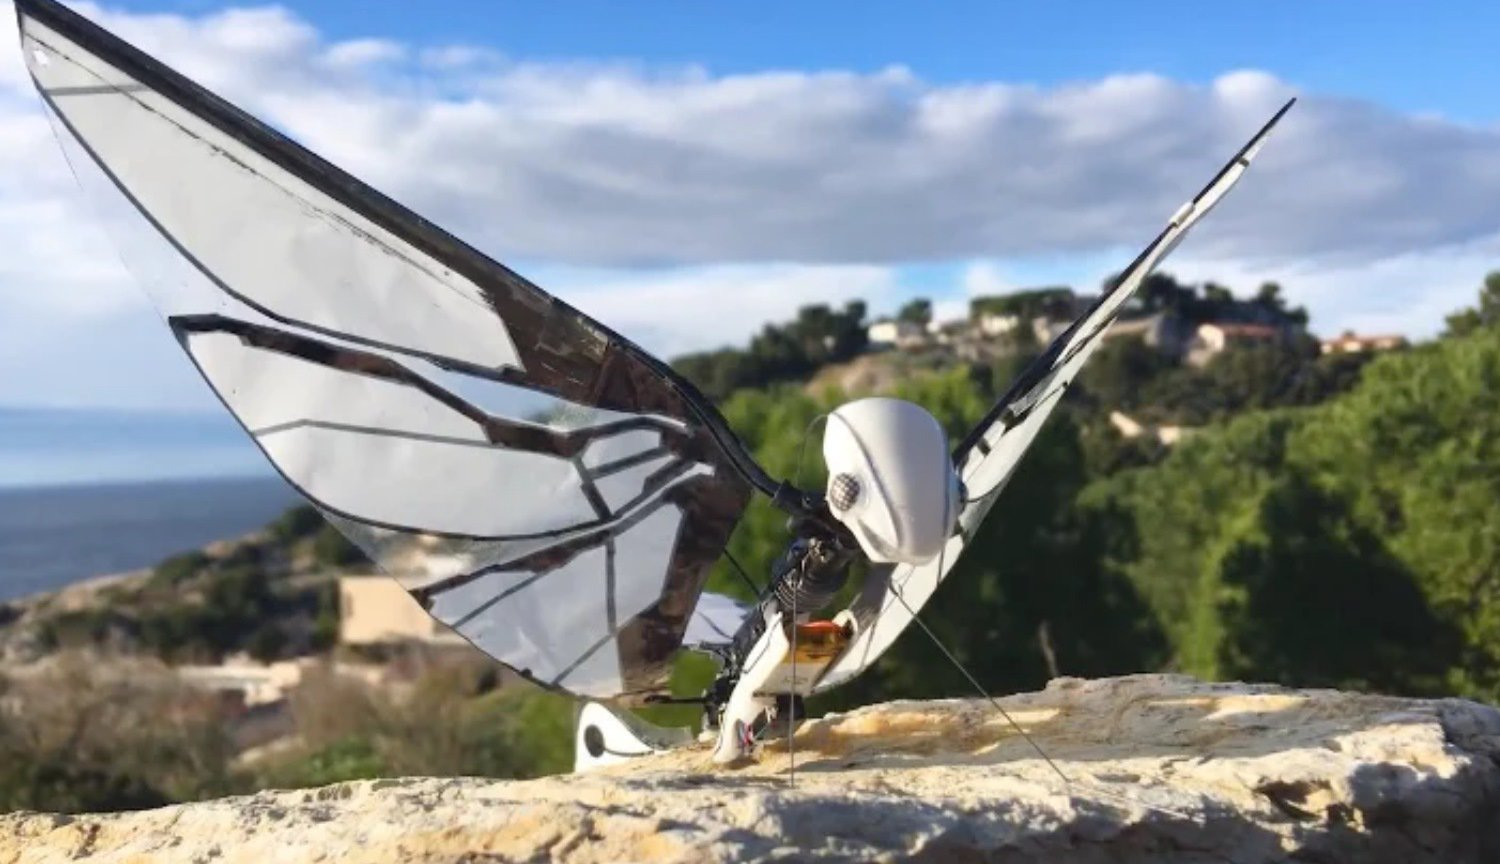 This robot is almost indistinguishable from live insects: see for yourself